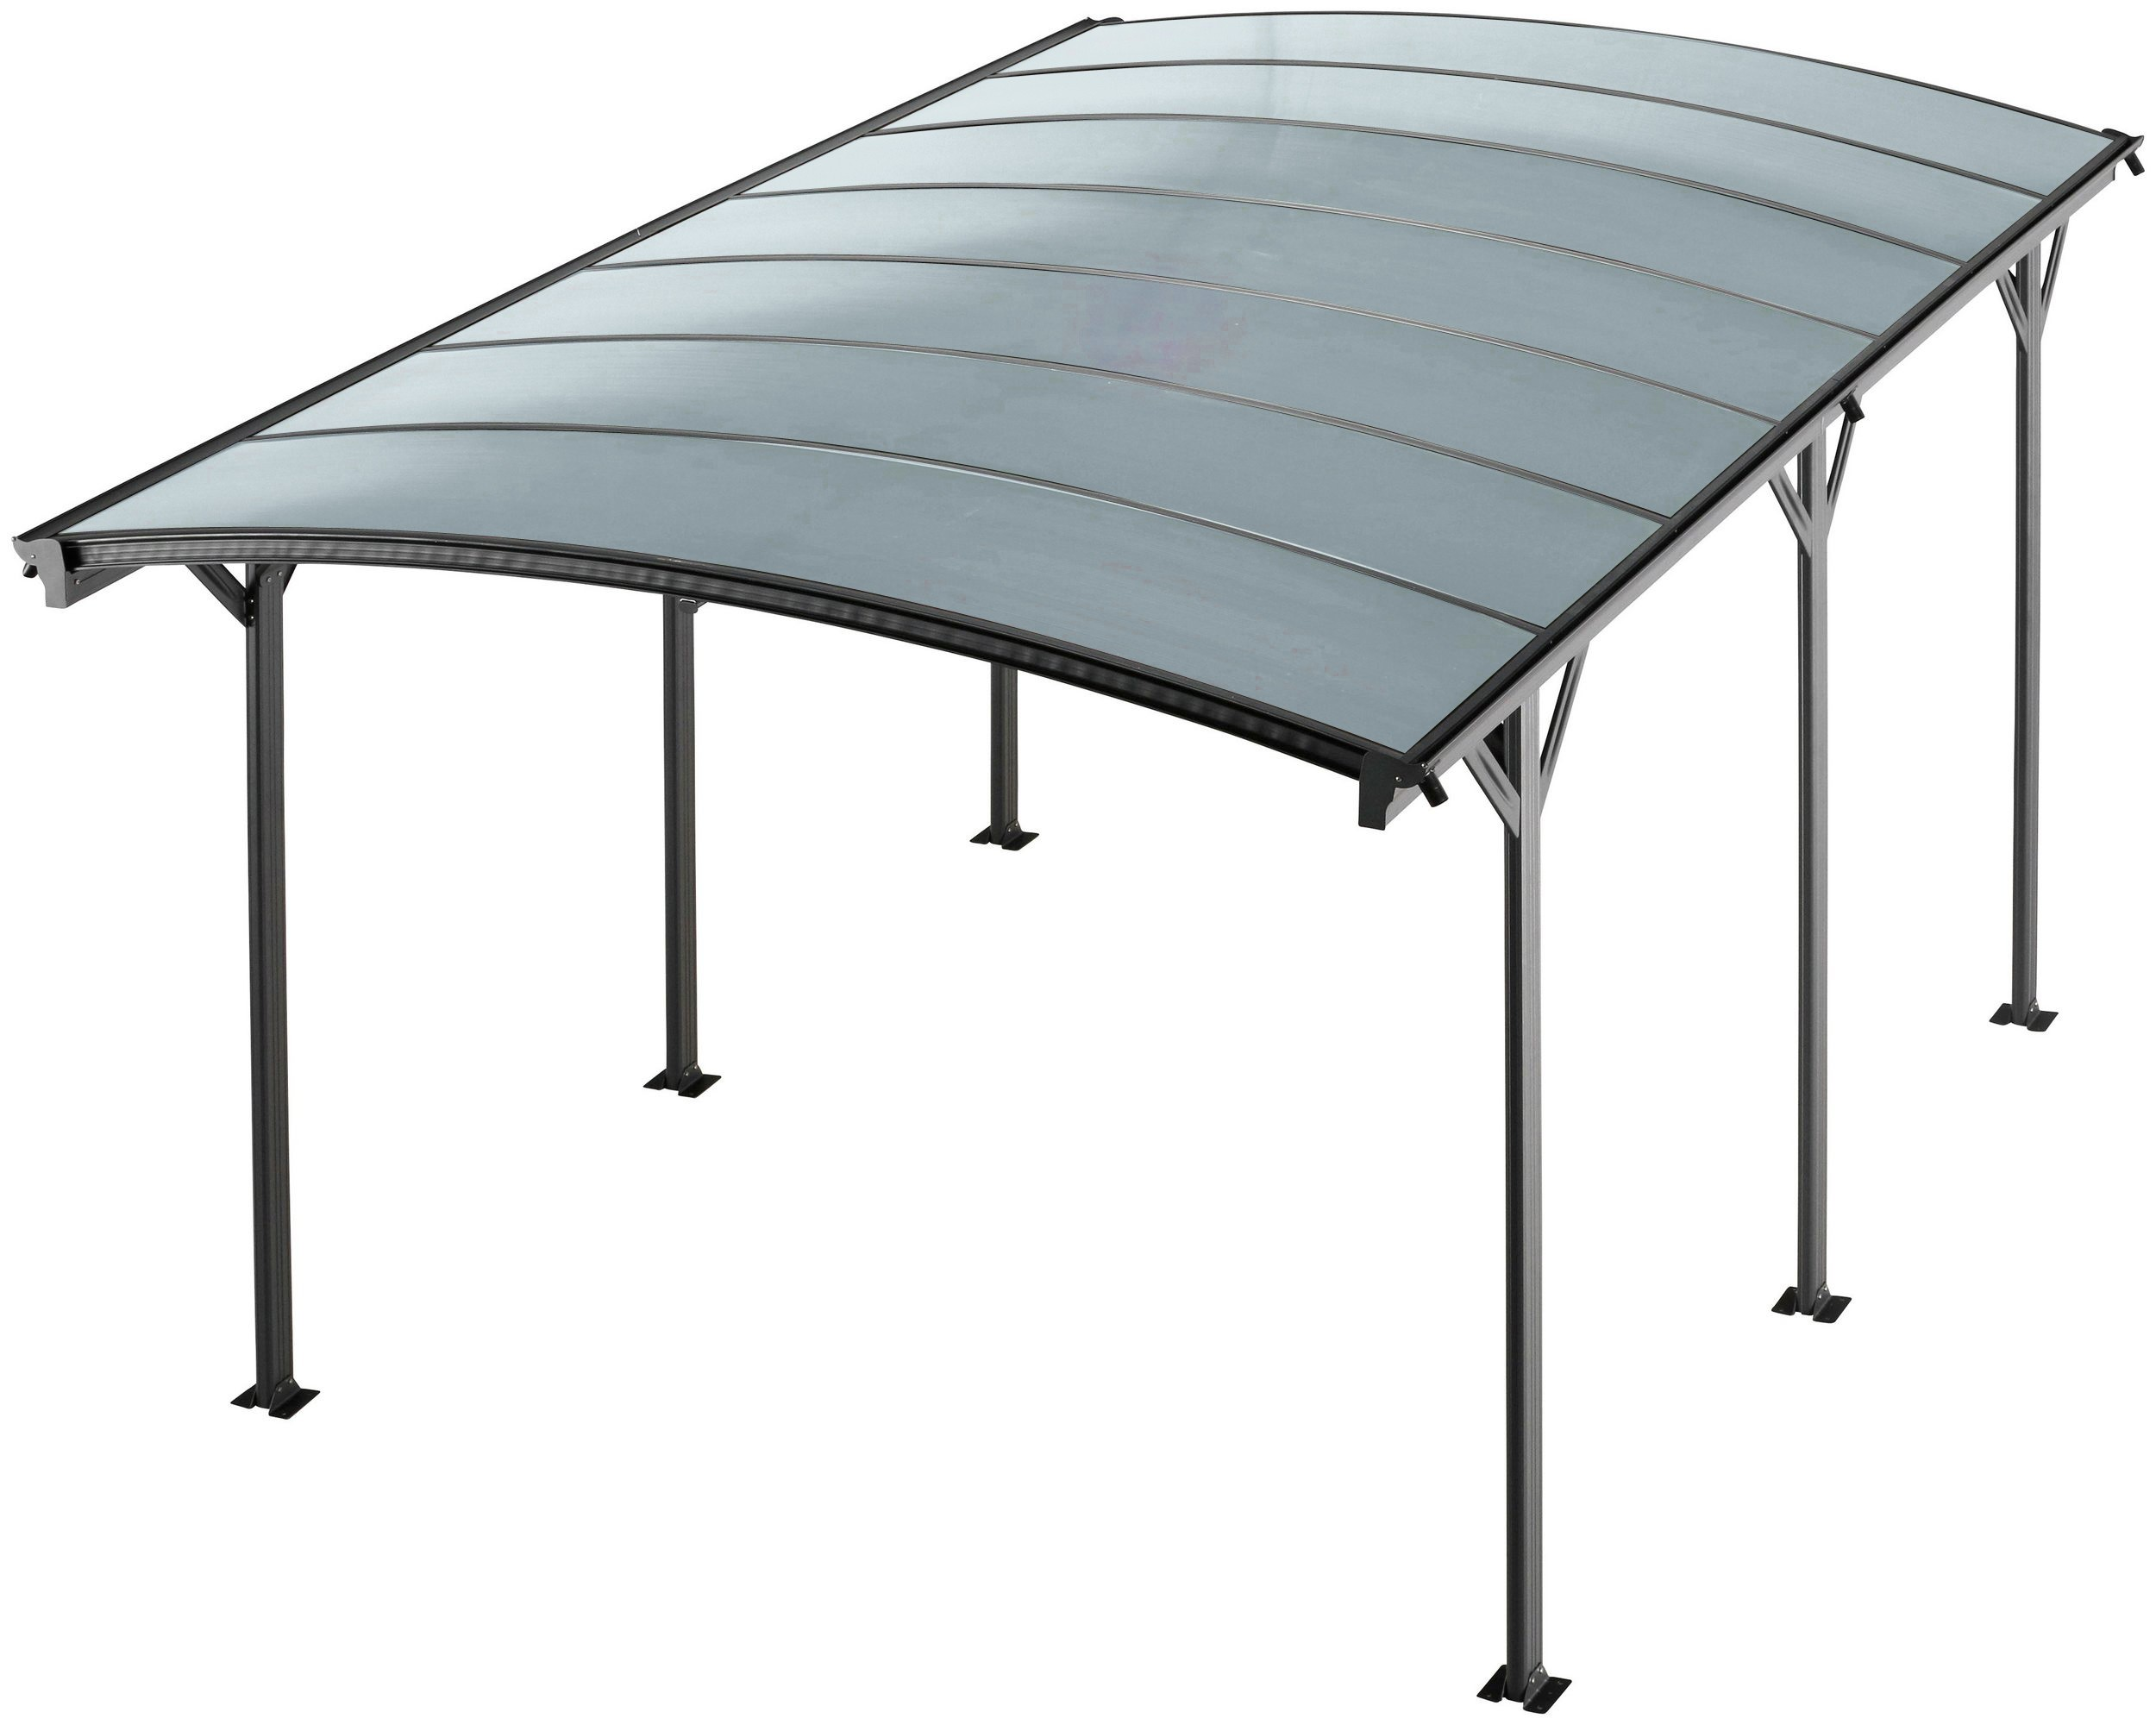 Kingston 10x16 Aluminium Curved Carport